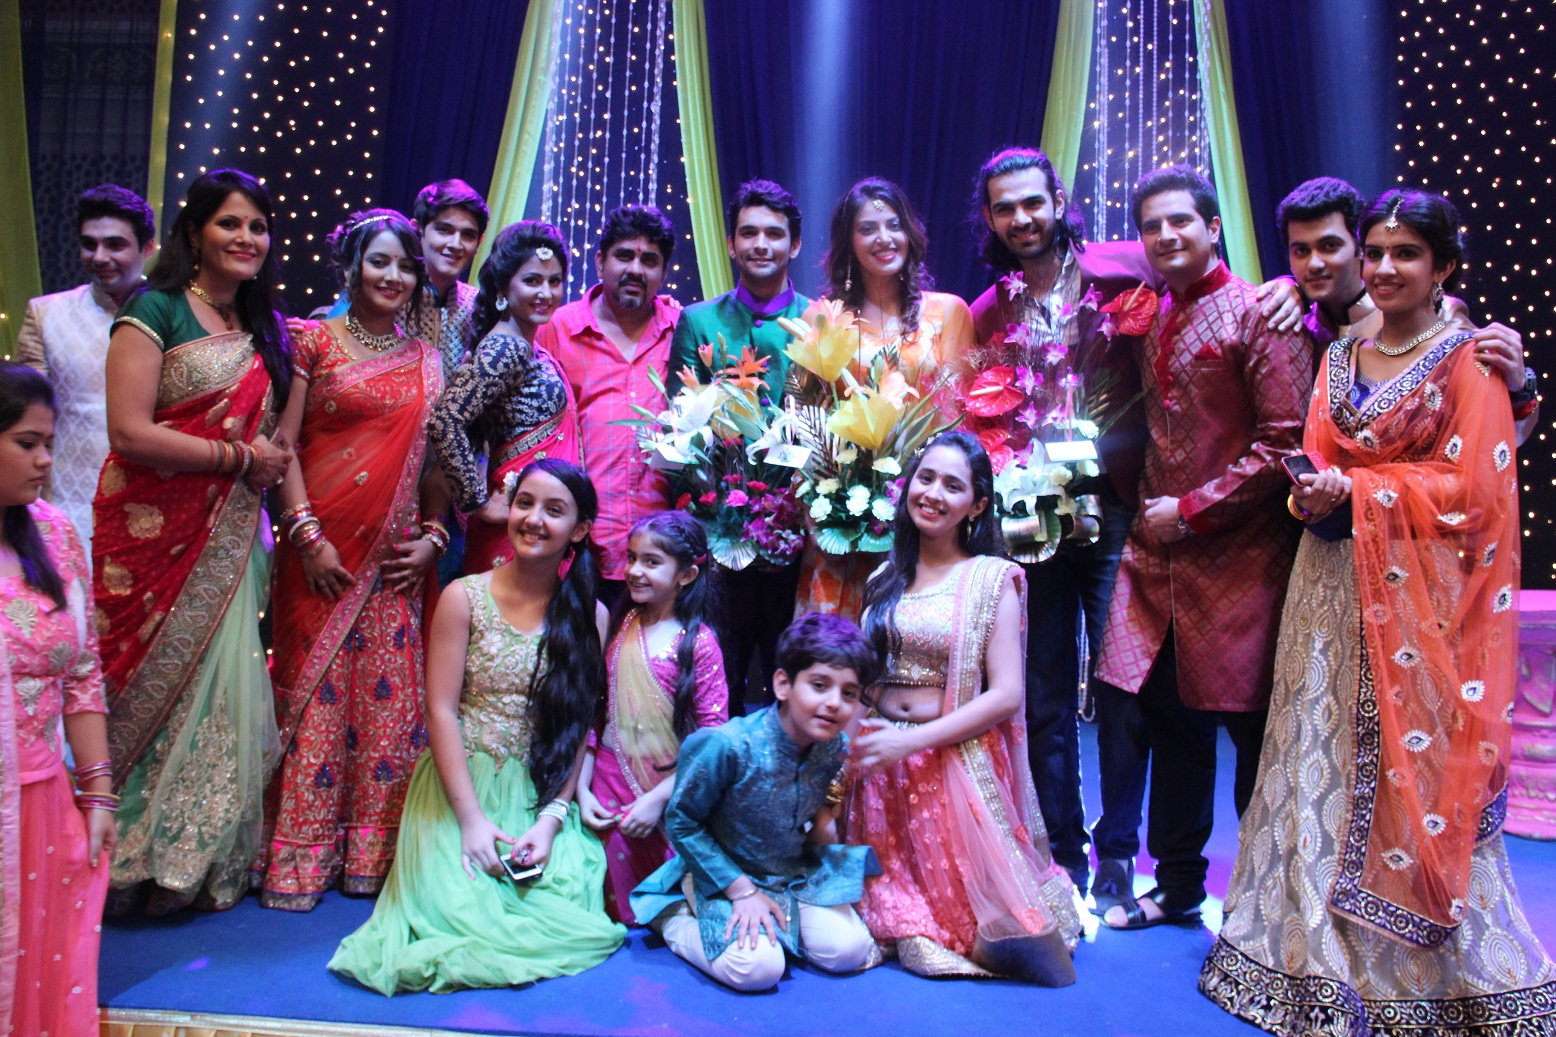 The Yeh Rishta Ky Kehlata Hai Team With Karan V Grover, Anushka Ranjan And Diganth